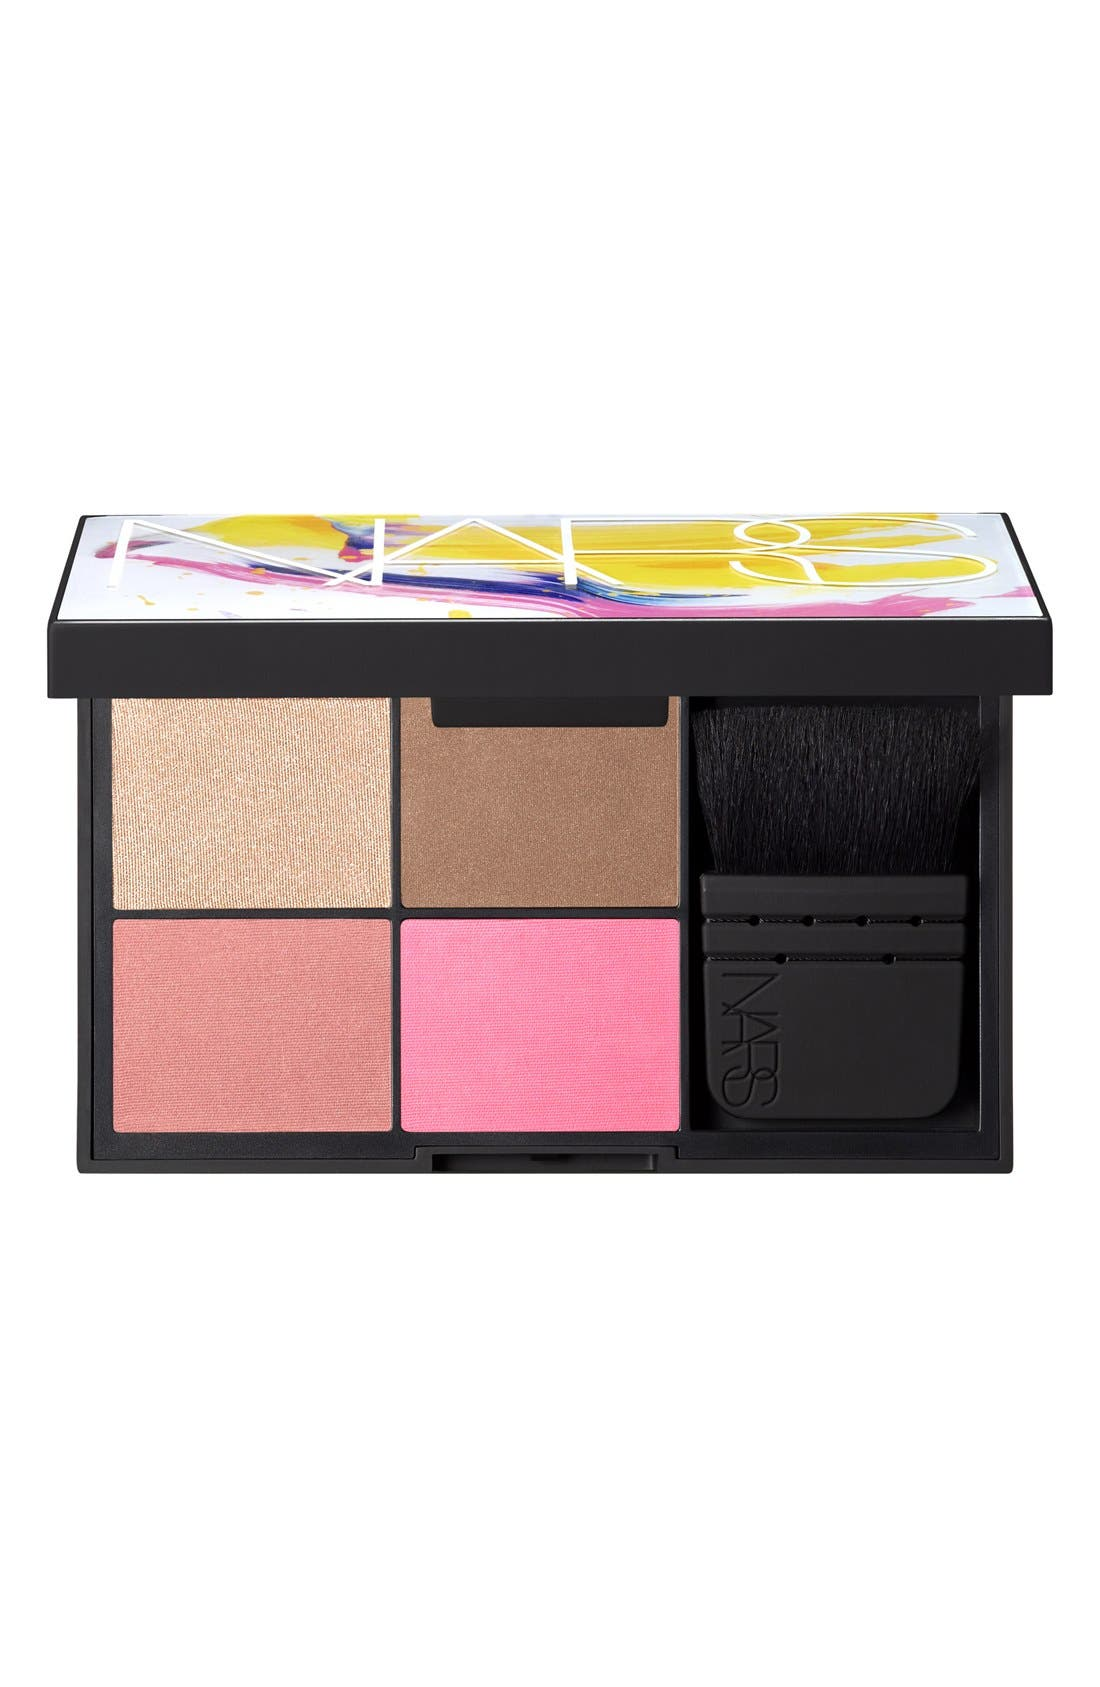 'Blame it on NARS' Cheek Palette,                         Main,                         color, 650